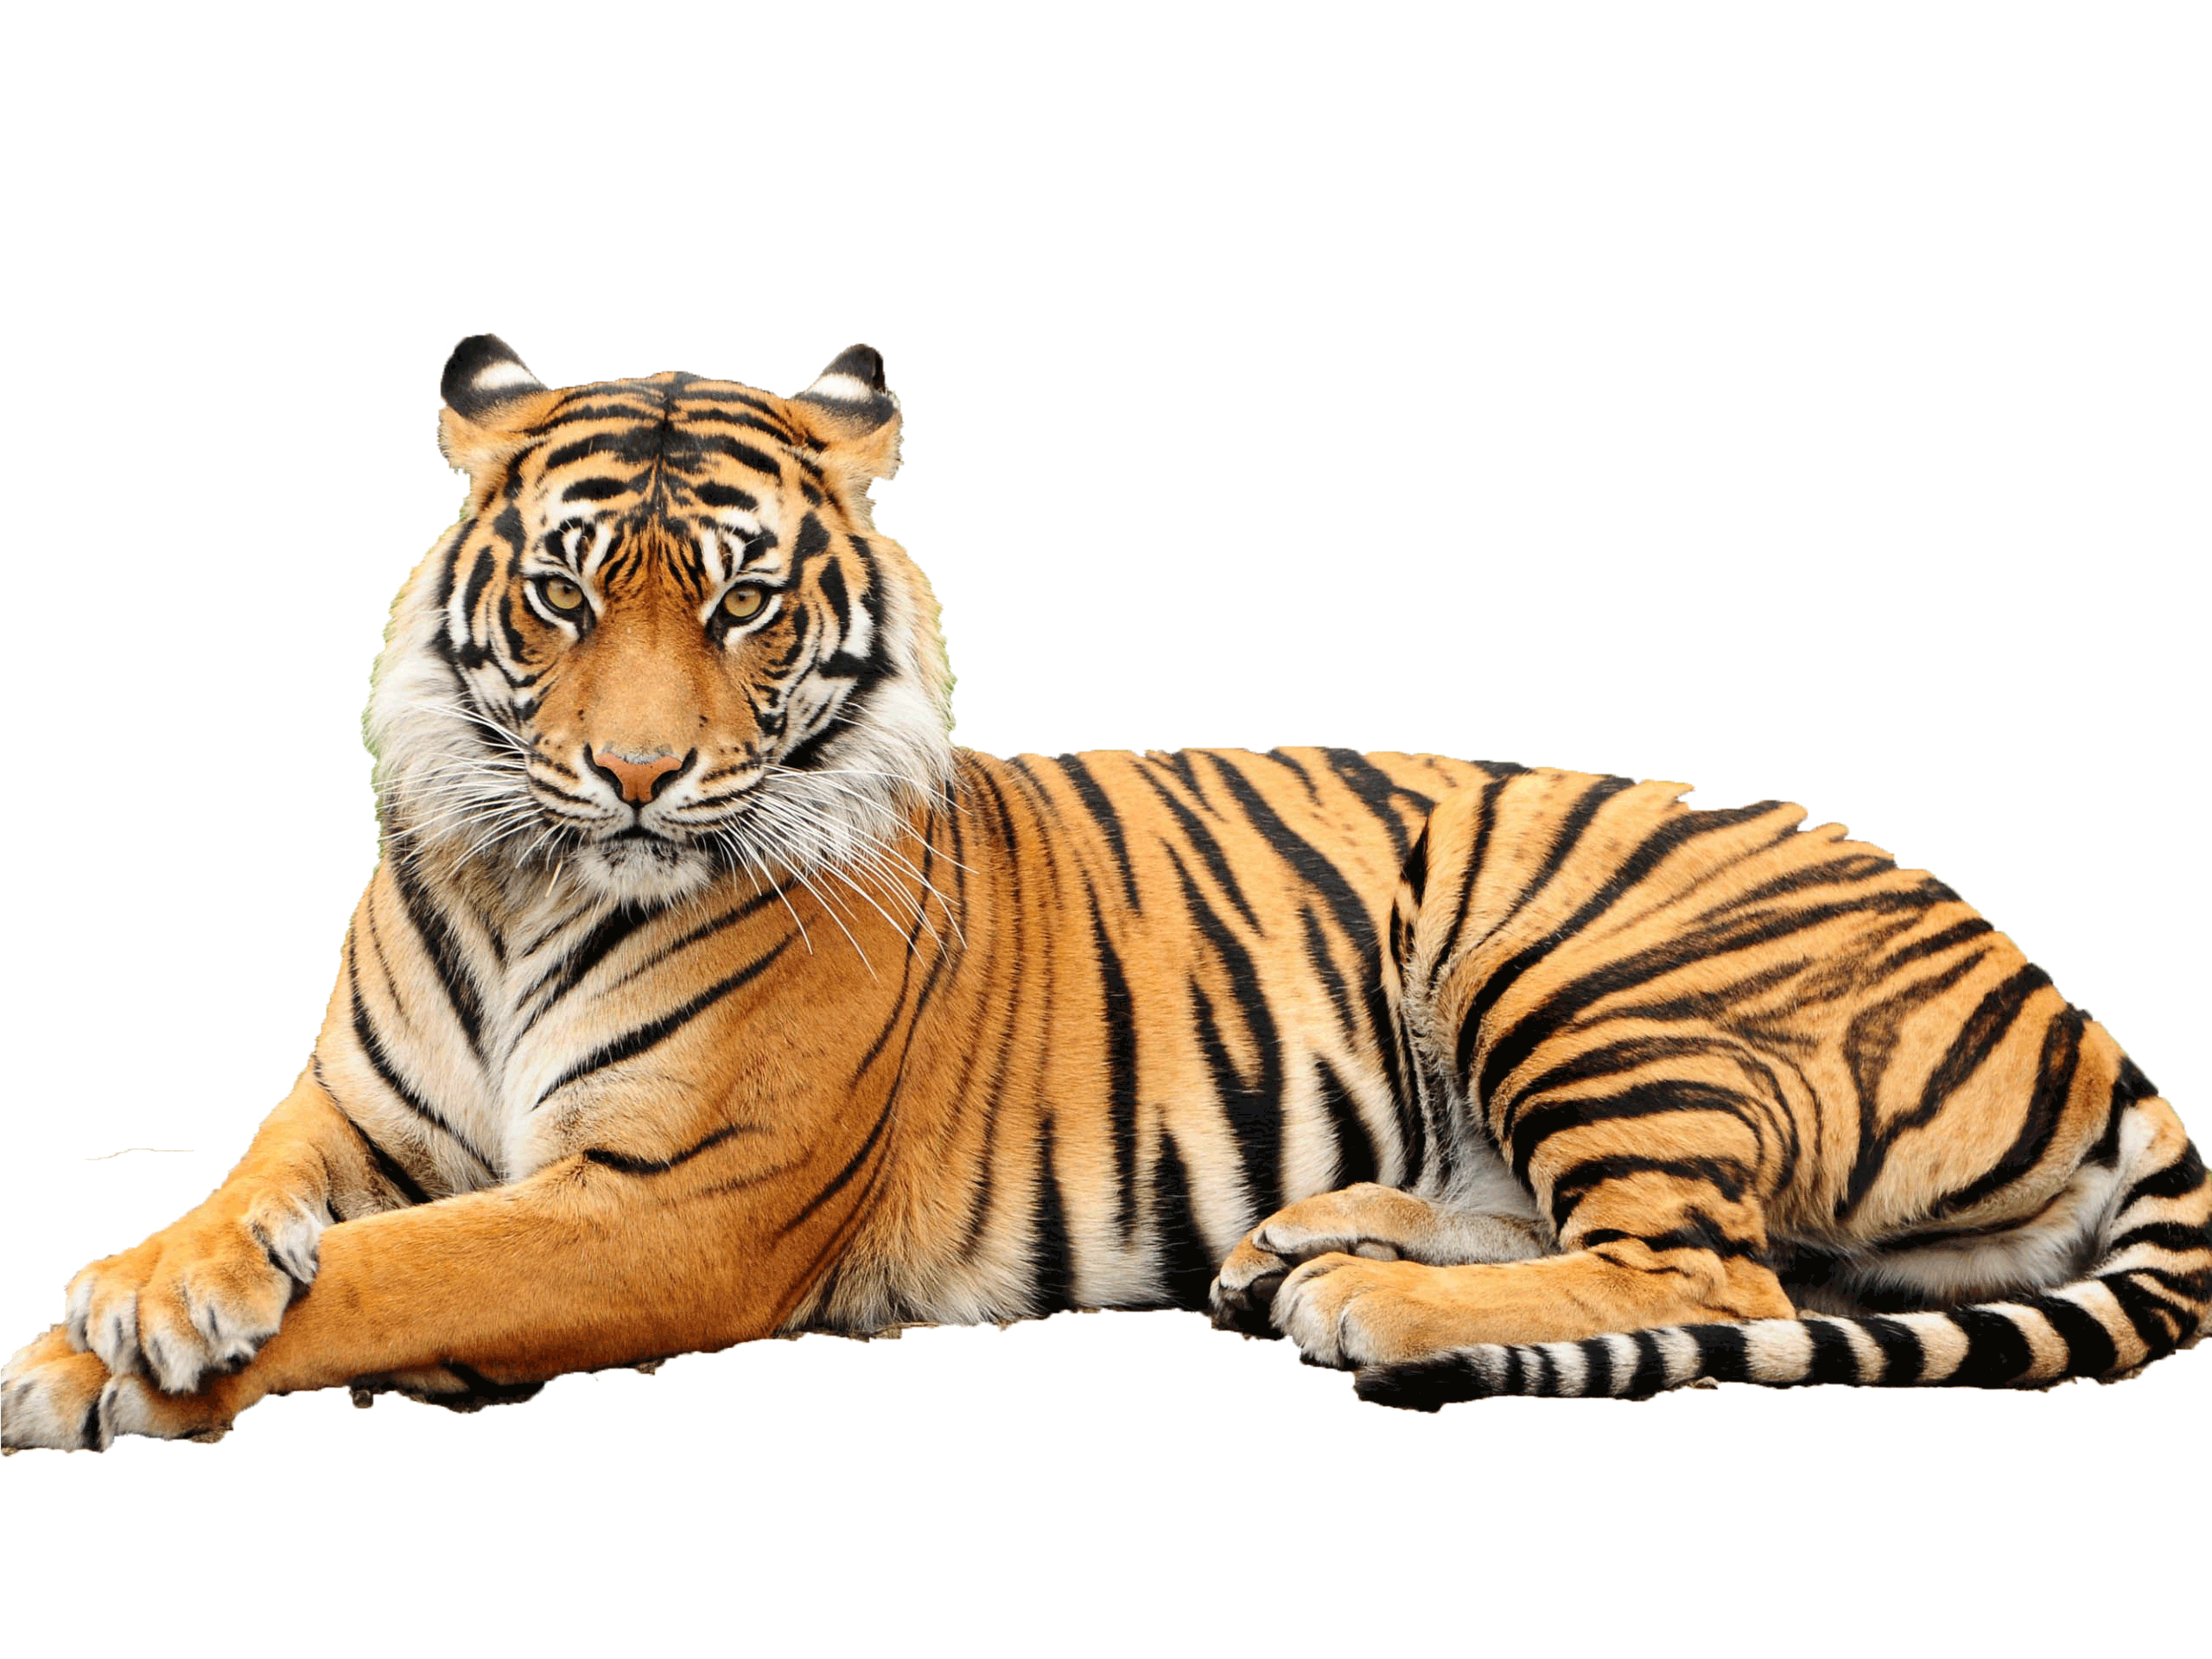 Tiger Hd Png Transparent Tiger Hd Png Images Pluspng